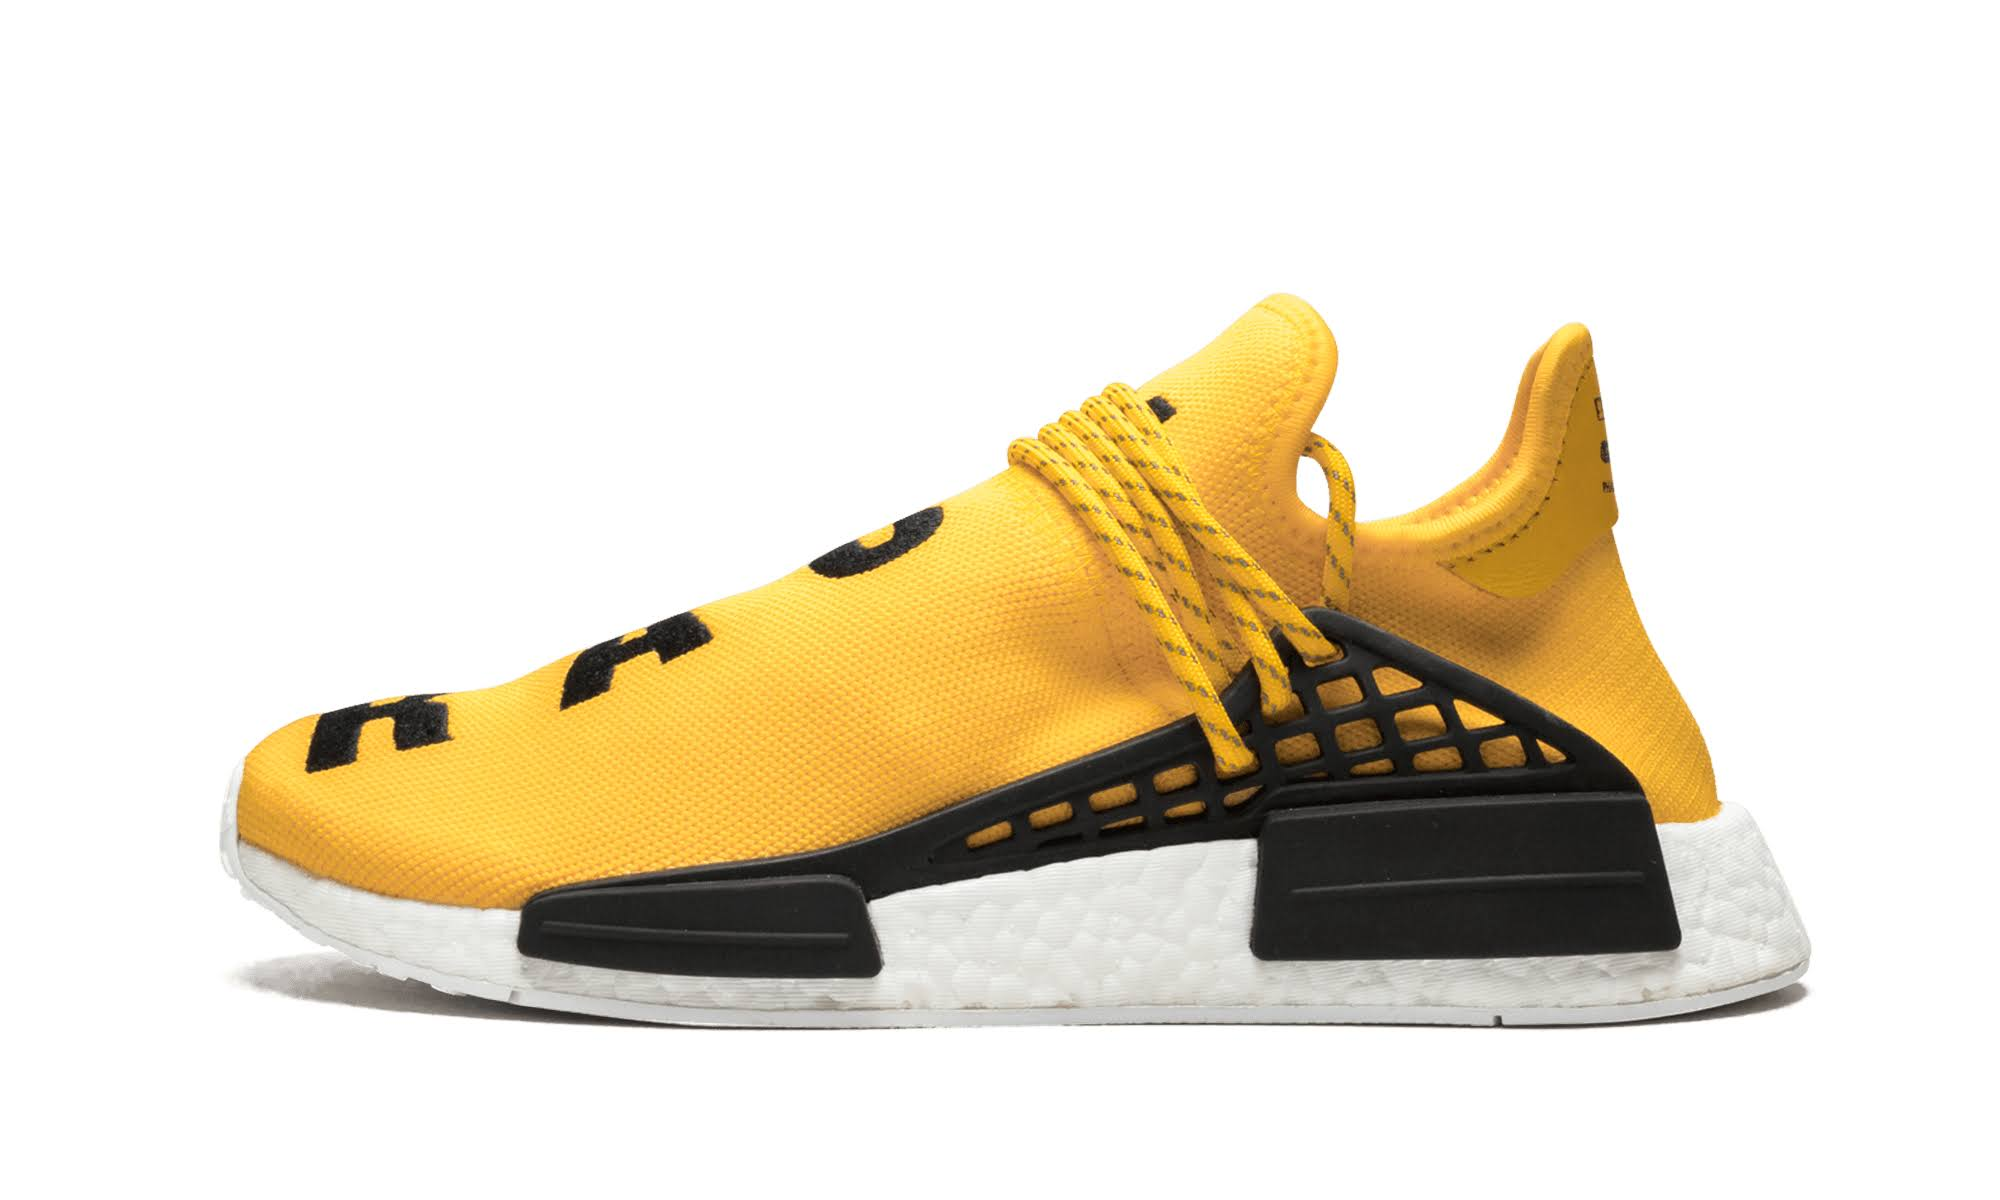 Race Adidas Black Nmd Core Yellow Pw Human 'pharrell' Eq6qw1zfB